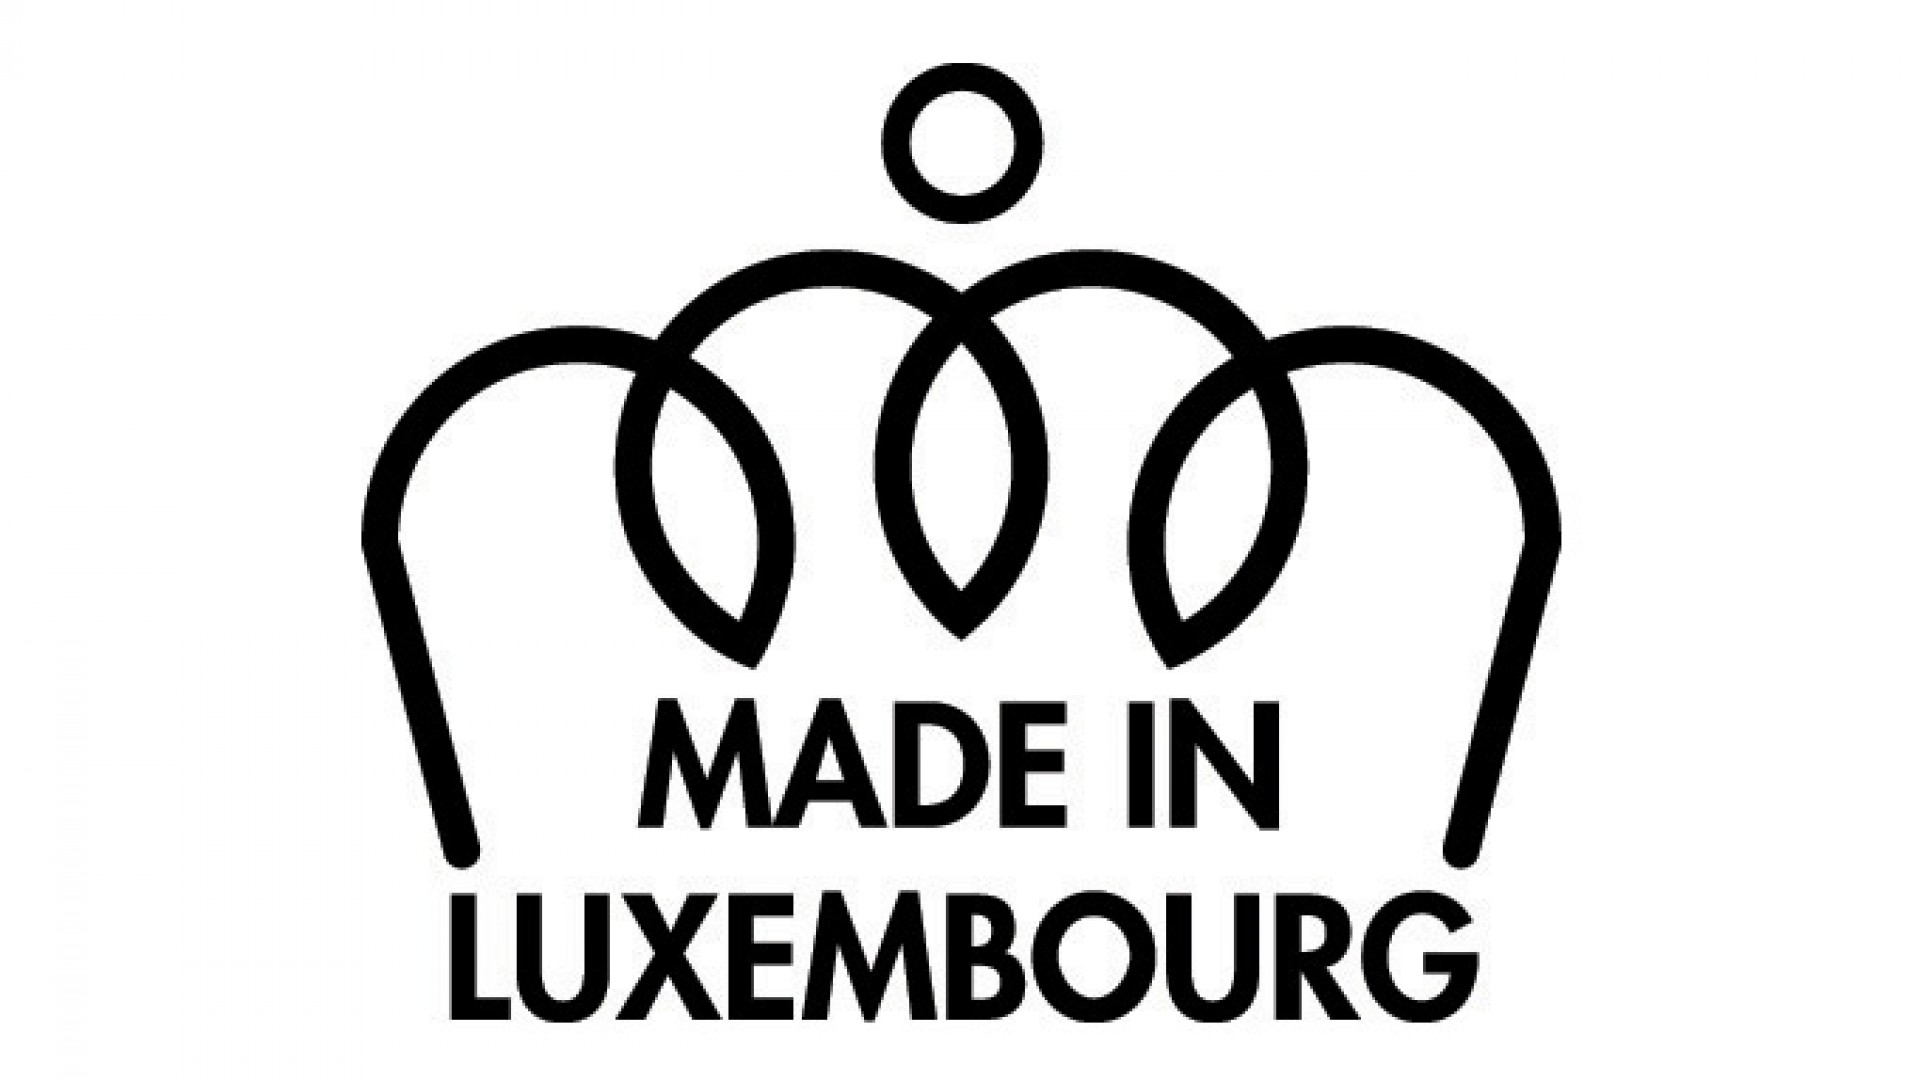 MADE IN LUX